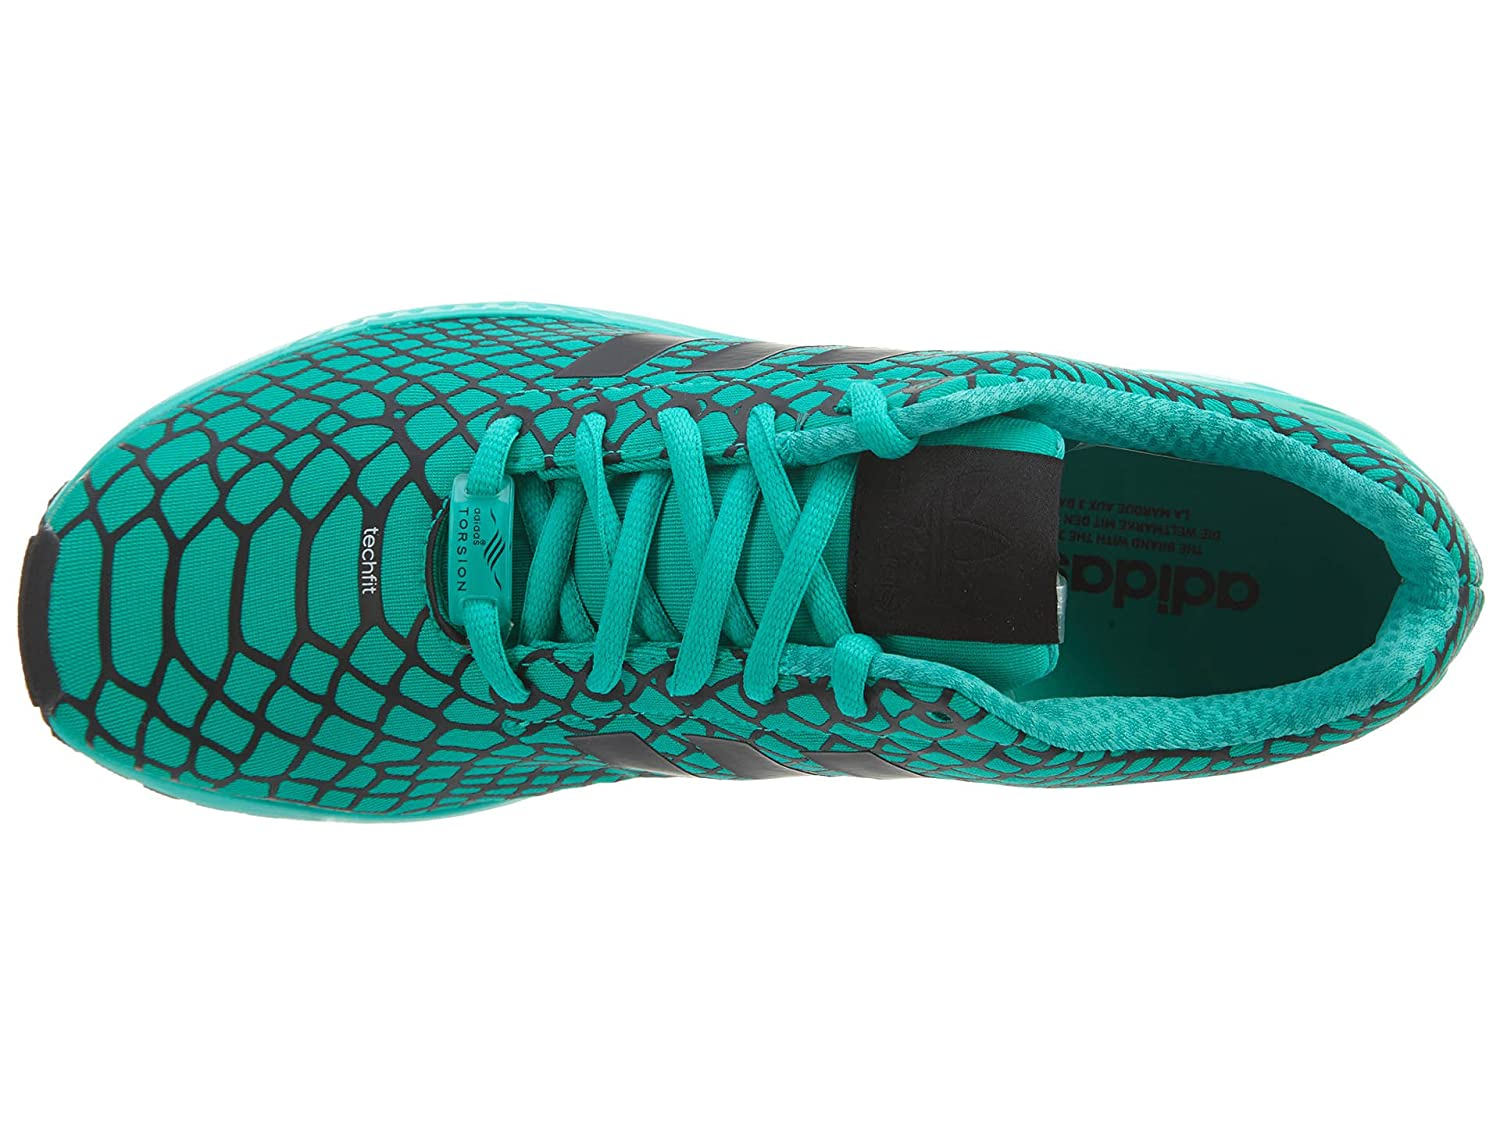 best website 8d9c2 126ab Amazon.com   adidas Zx Flux Techfit Men s Shoes   Road Running